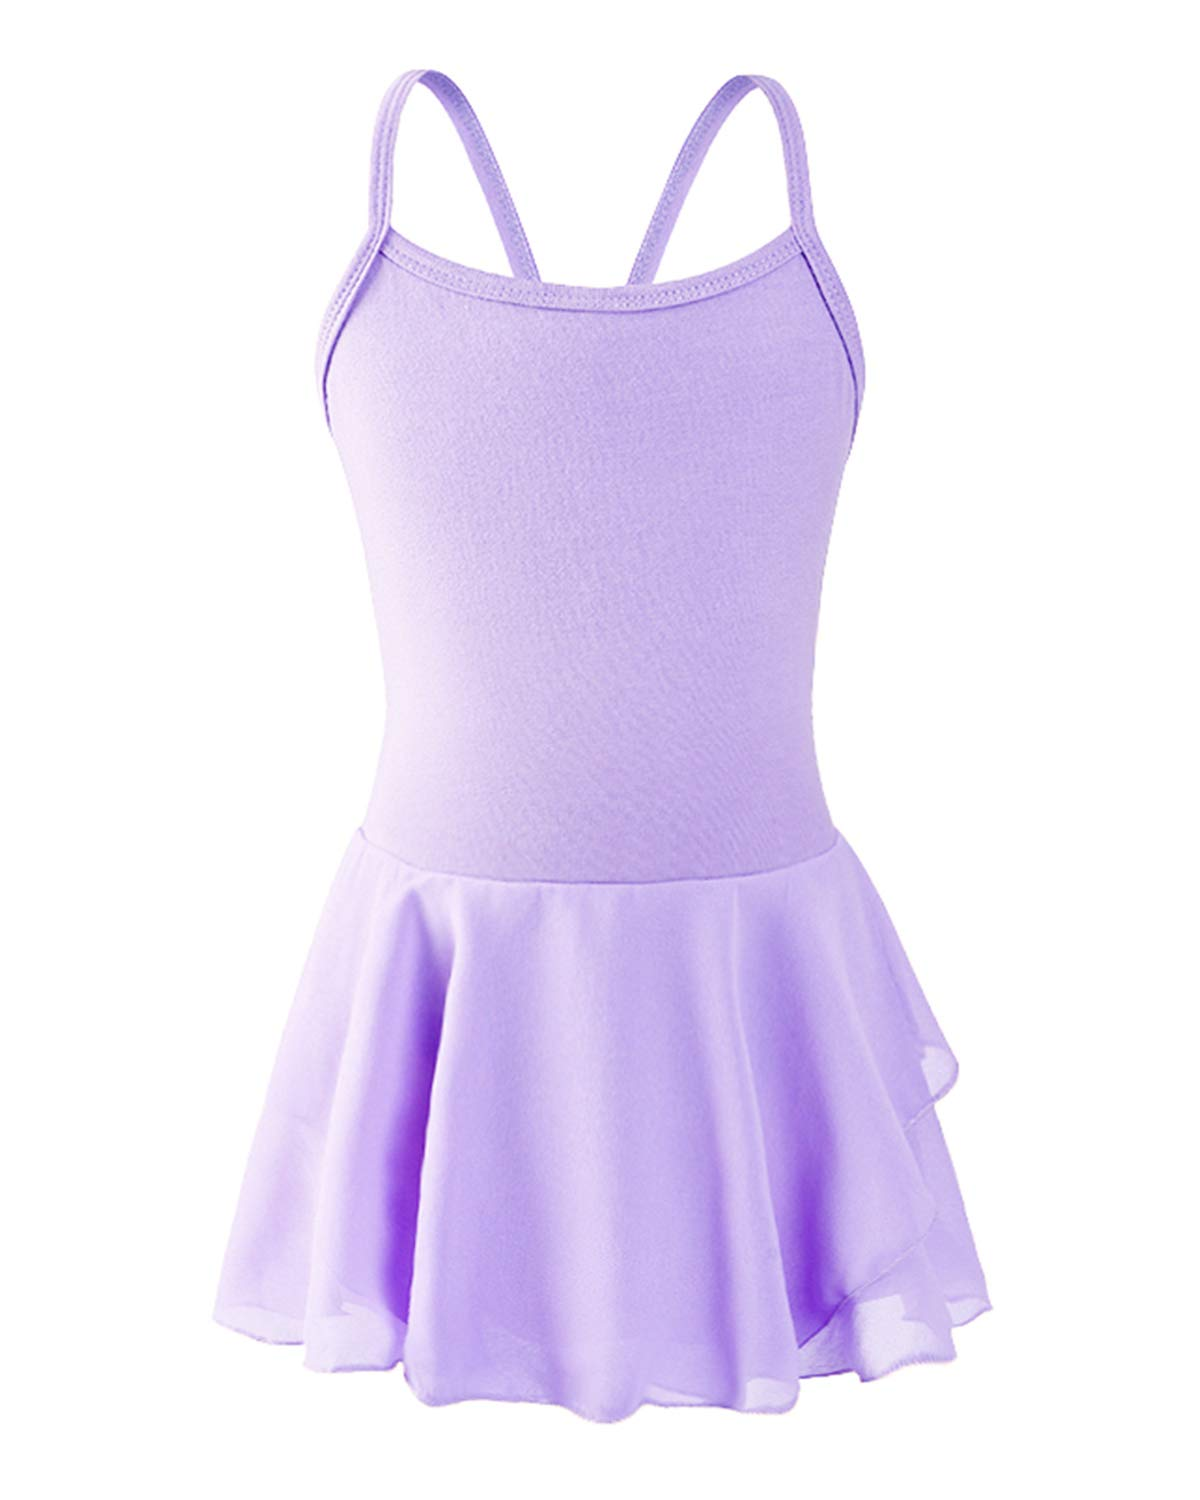 STELLE Girls Cotton Camisole Dress Leotard for Dance, Ballet (Purple, S) by STELLE